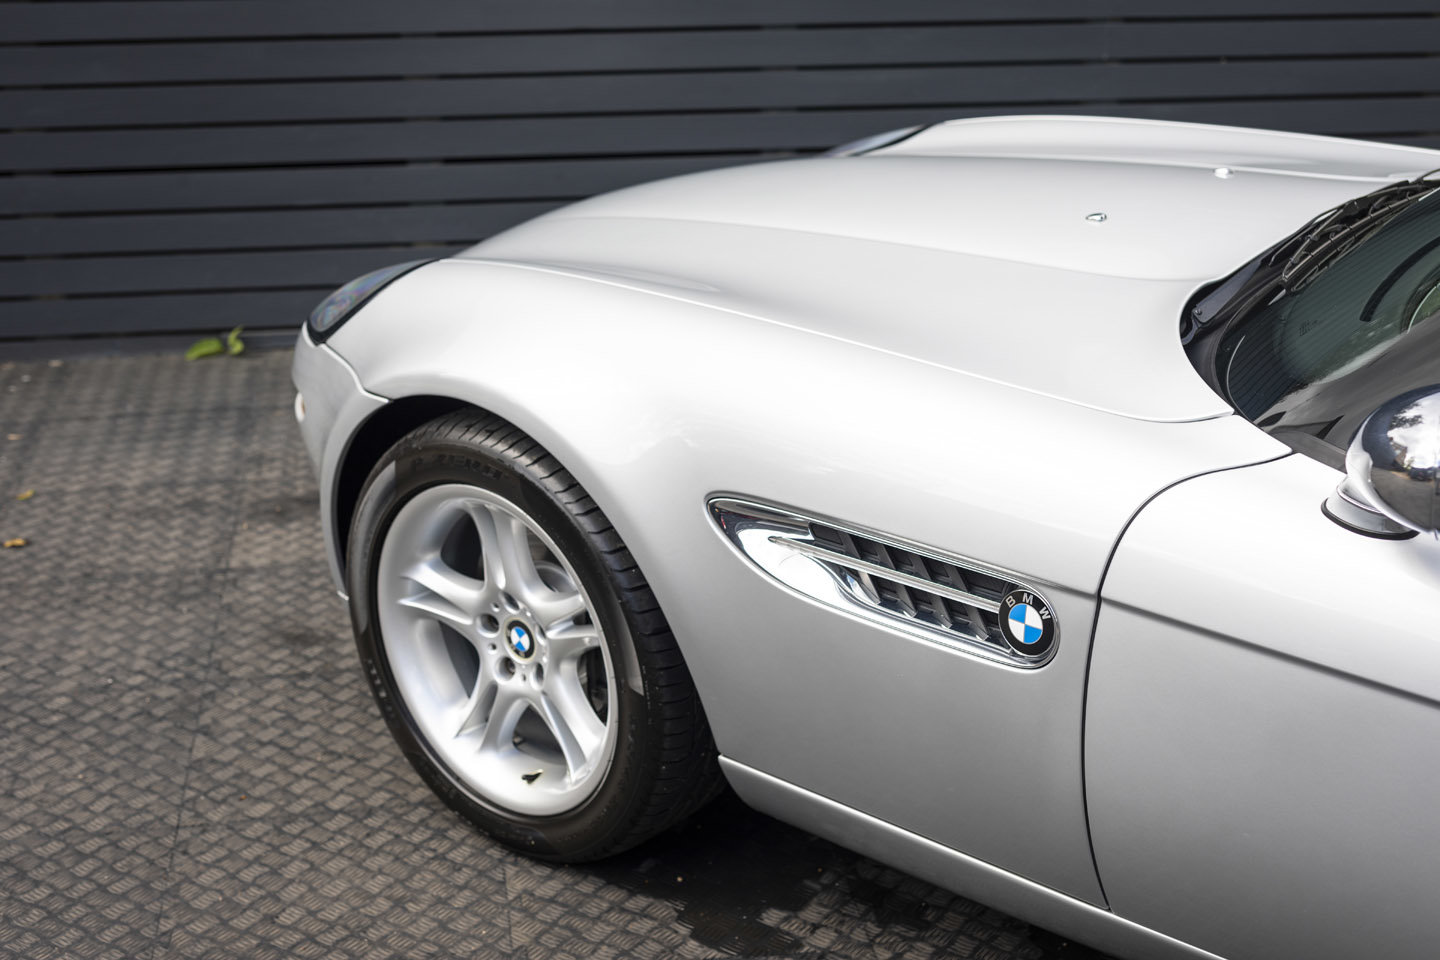 2001 BMW Z8 Roadster ONLY 10500 MILES EUROPEAN For Sale (picture 19 of 22)